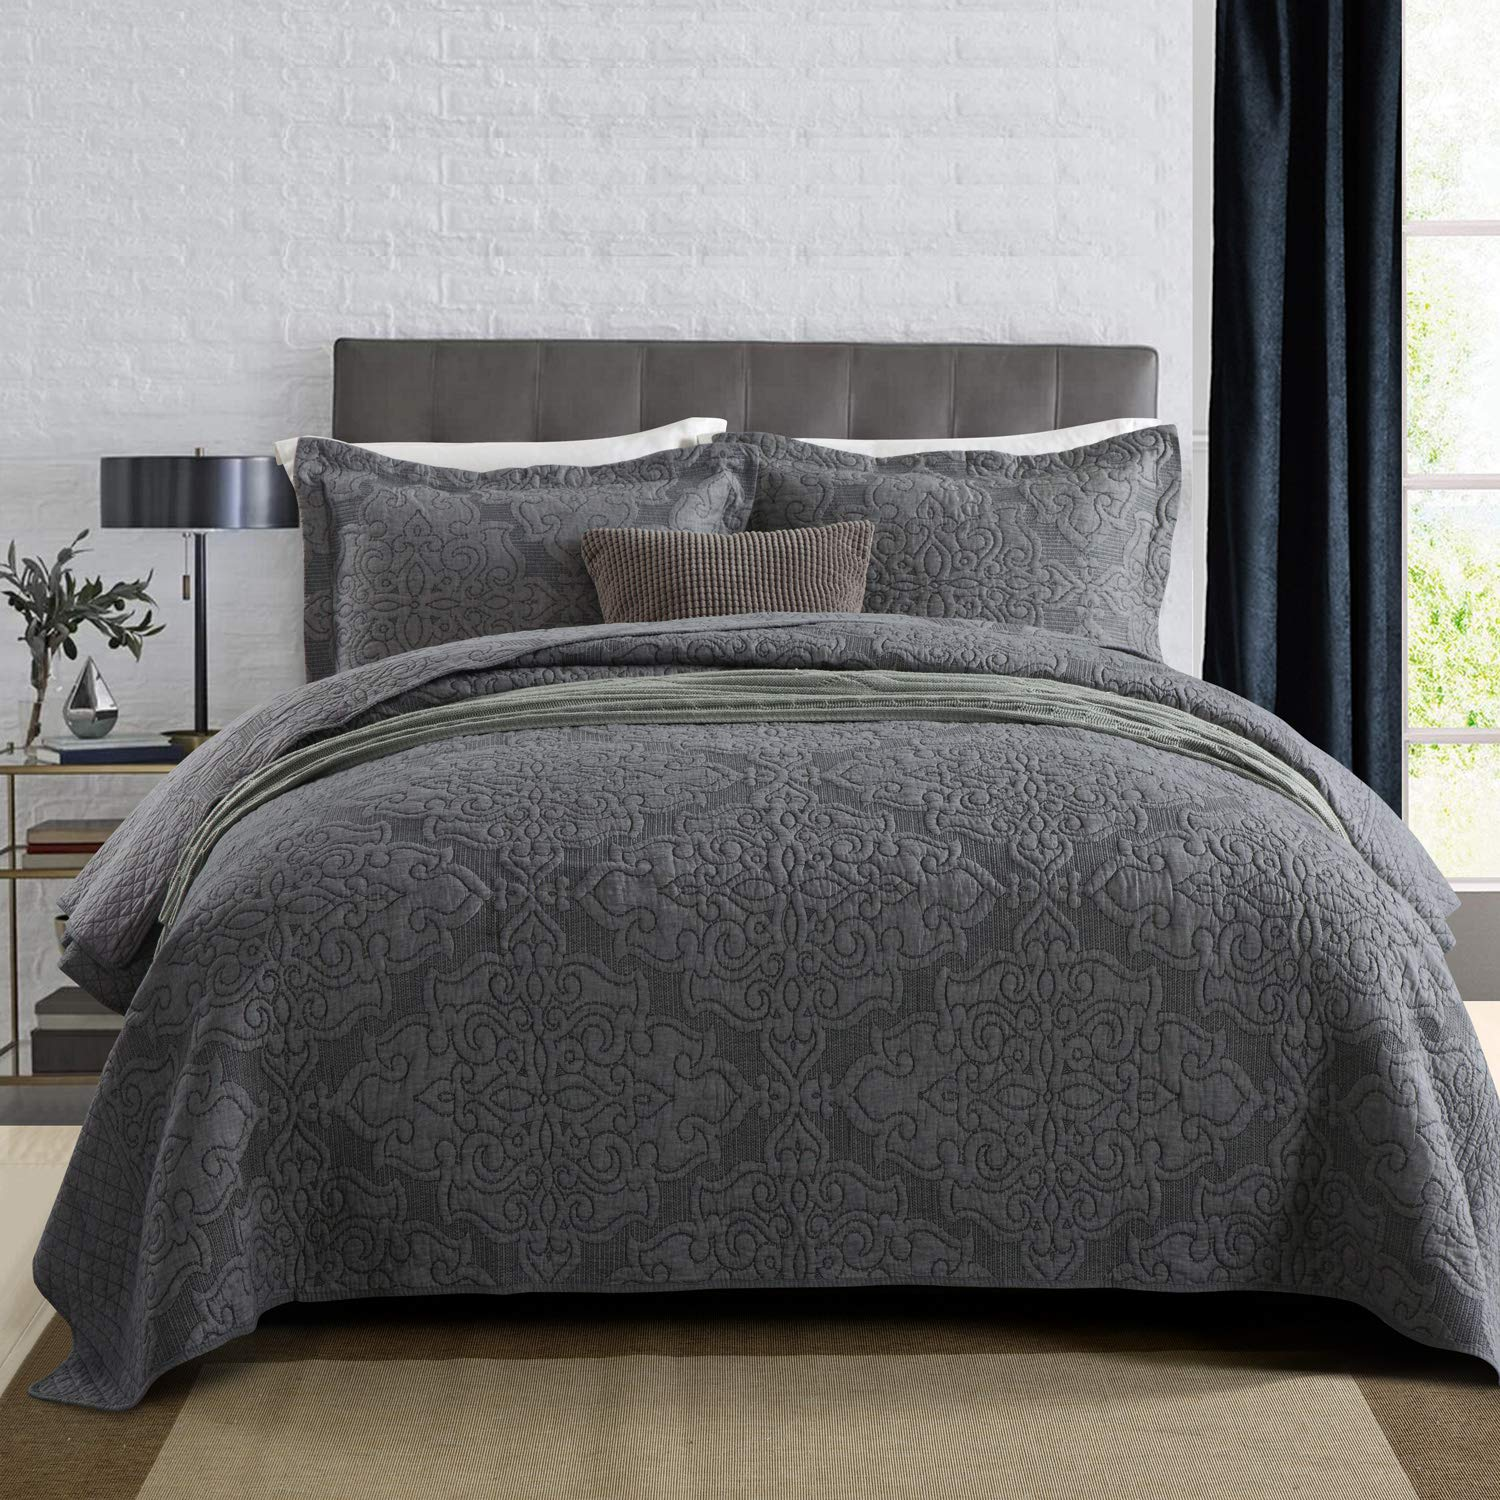 NEWLAKE Reversible Quilt Bedspread Coverlet Set,Jacquard Embossed Floral,Grey, Queen Size